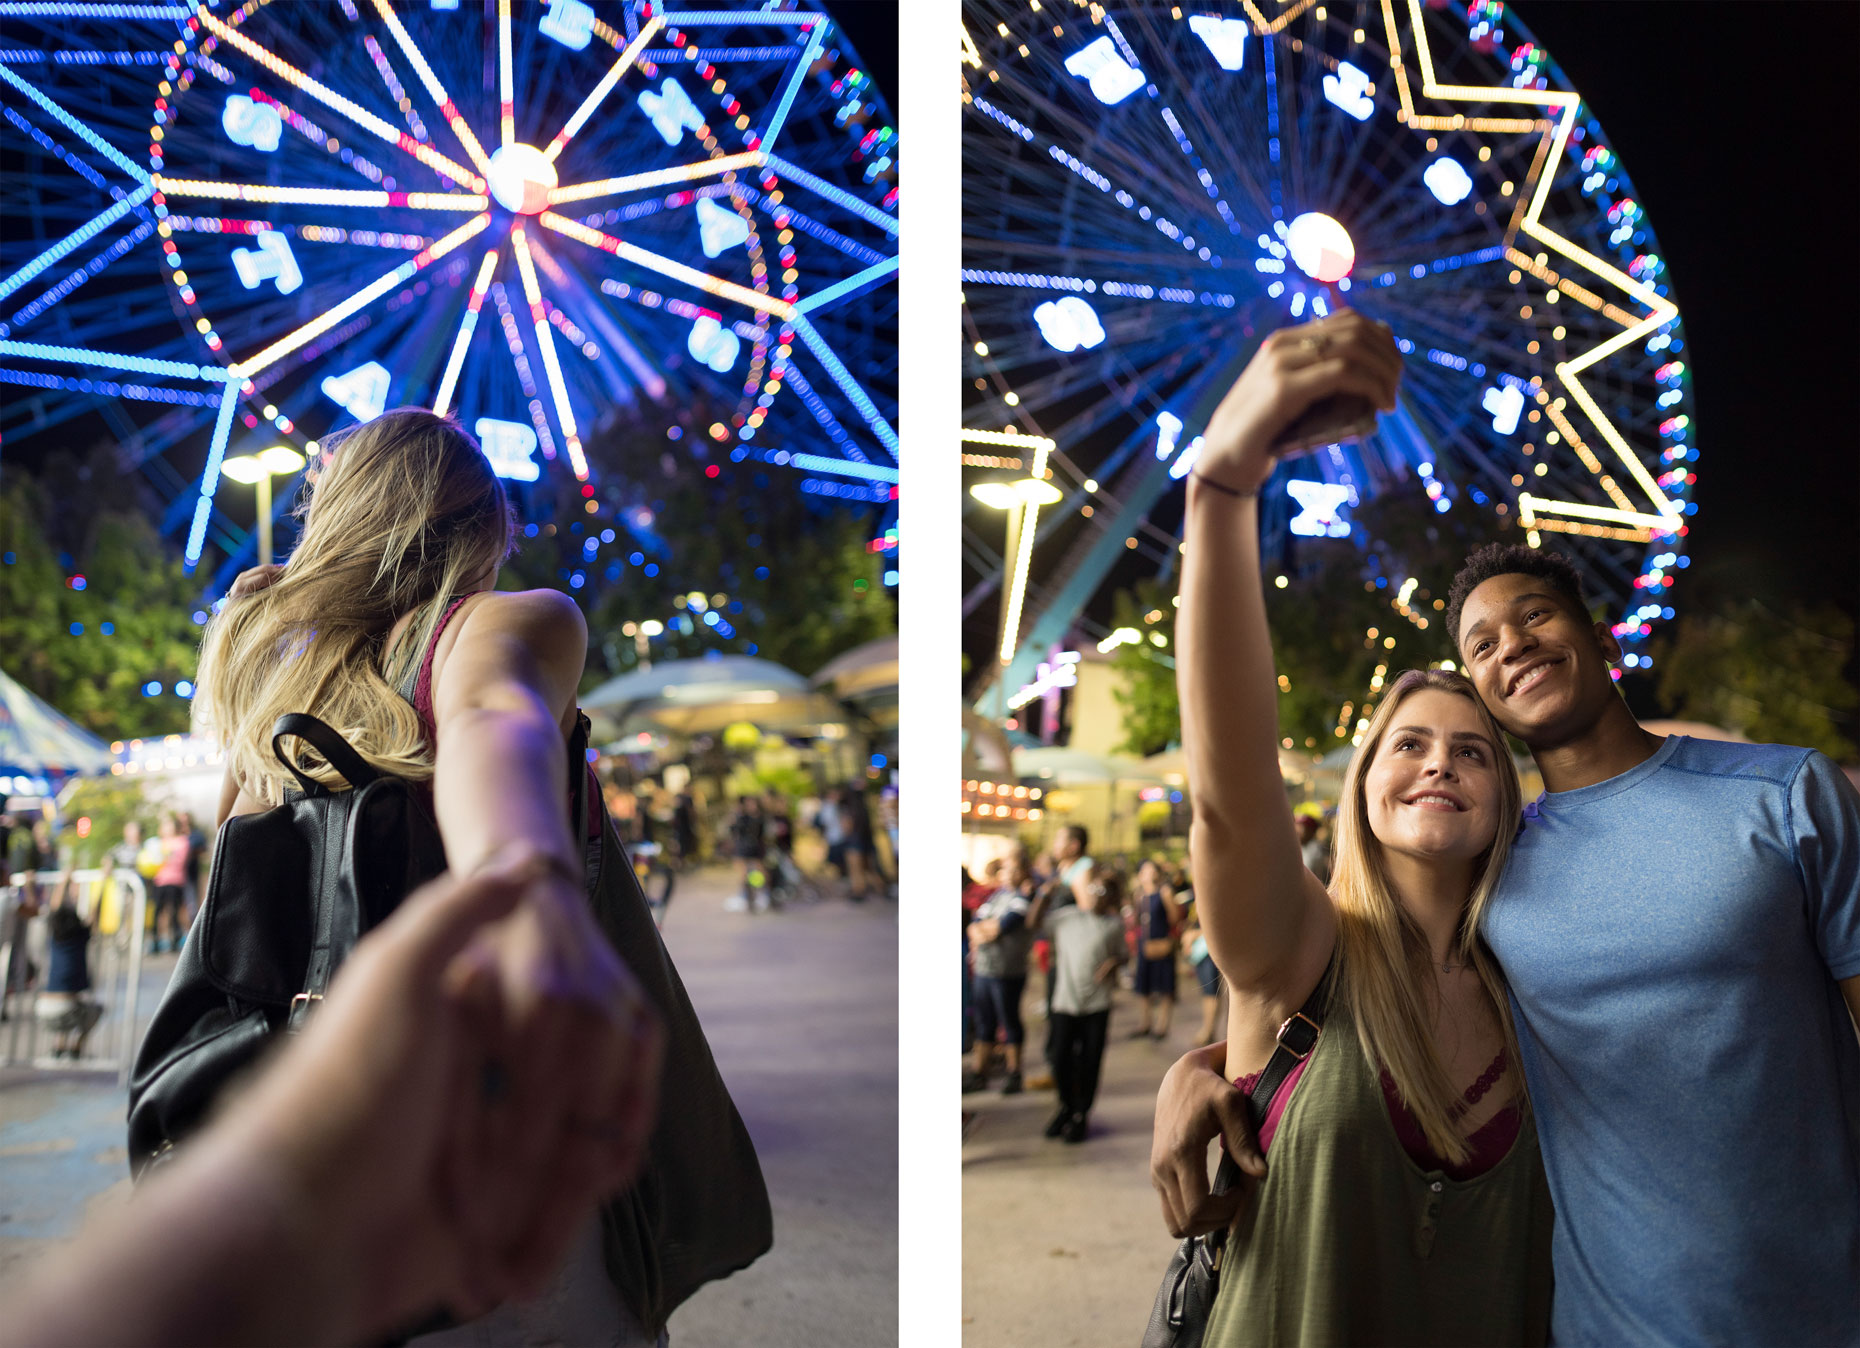 Date night at The State Fair of Texas. Photography by Kevin Brown